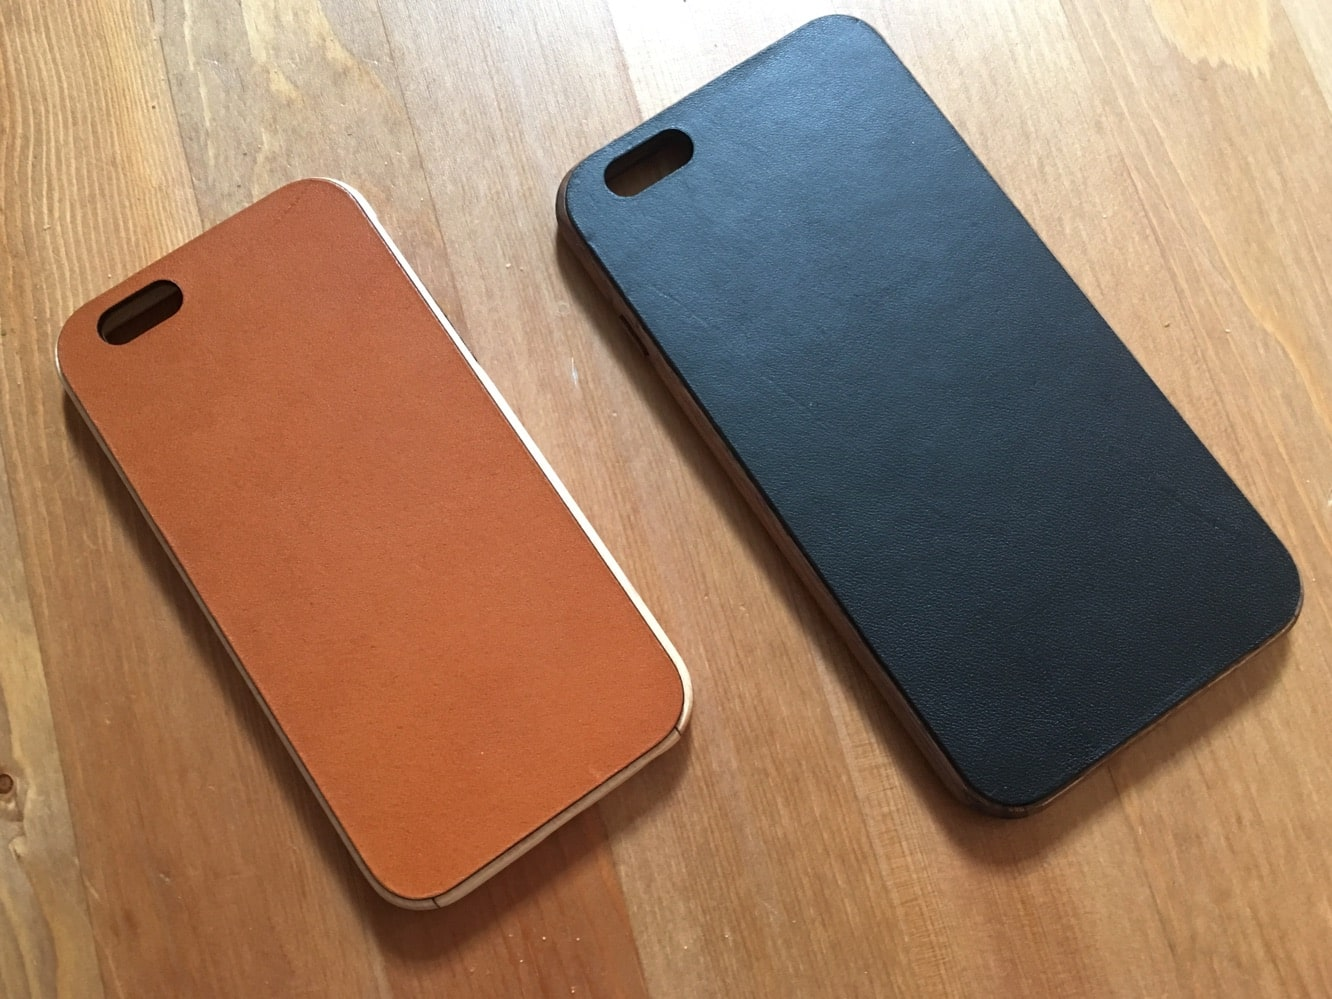 Grovemade Wood + Leather Cases for iPhone 6/6s/Plus